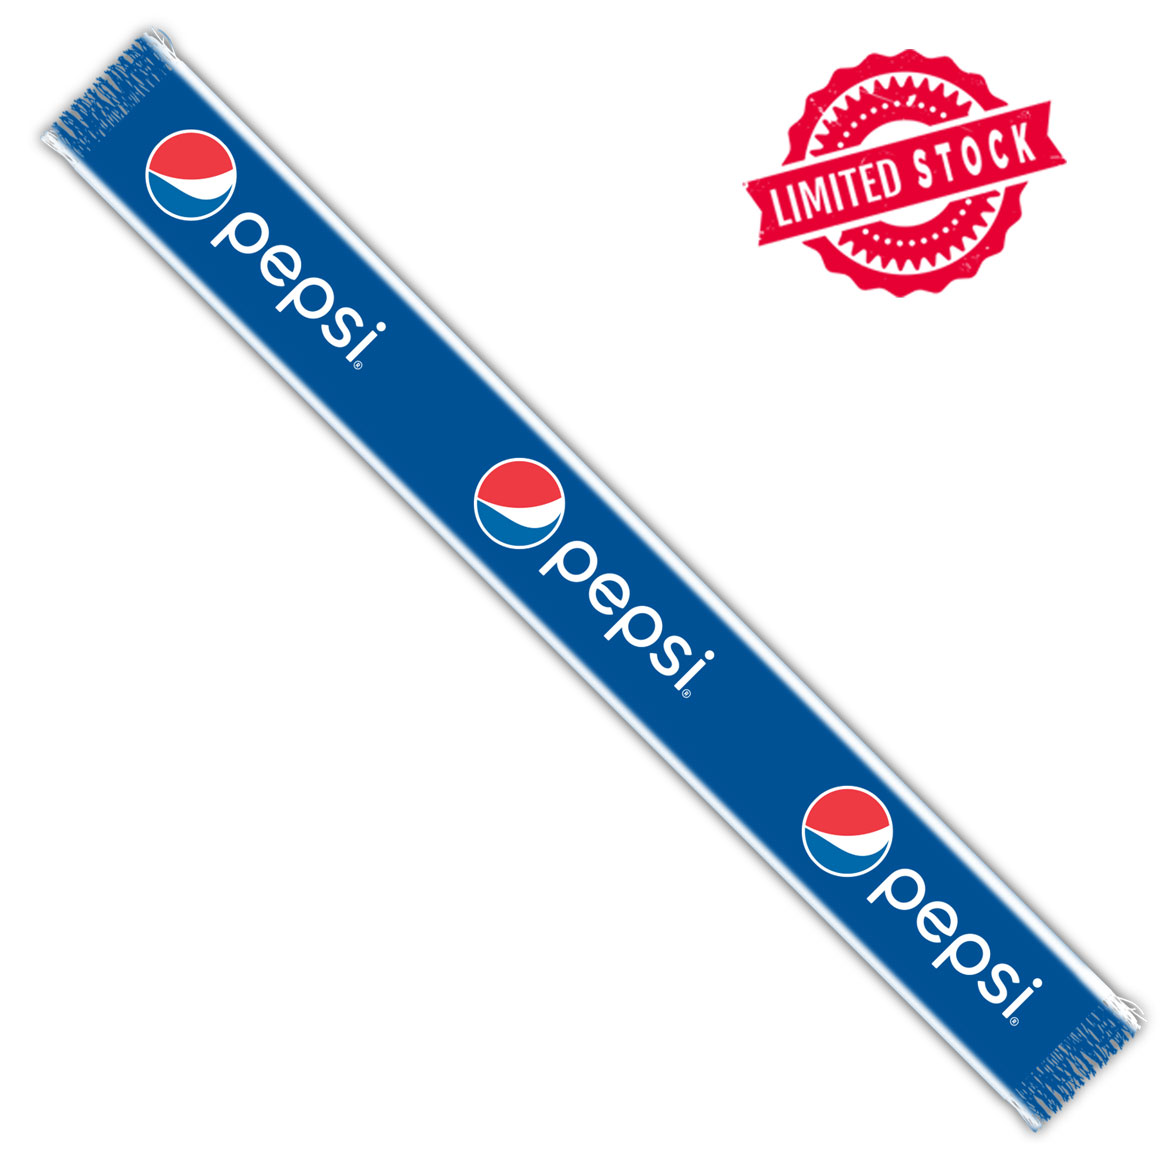 The 2019 Pepsi Holiday Scarf